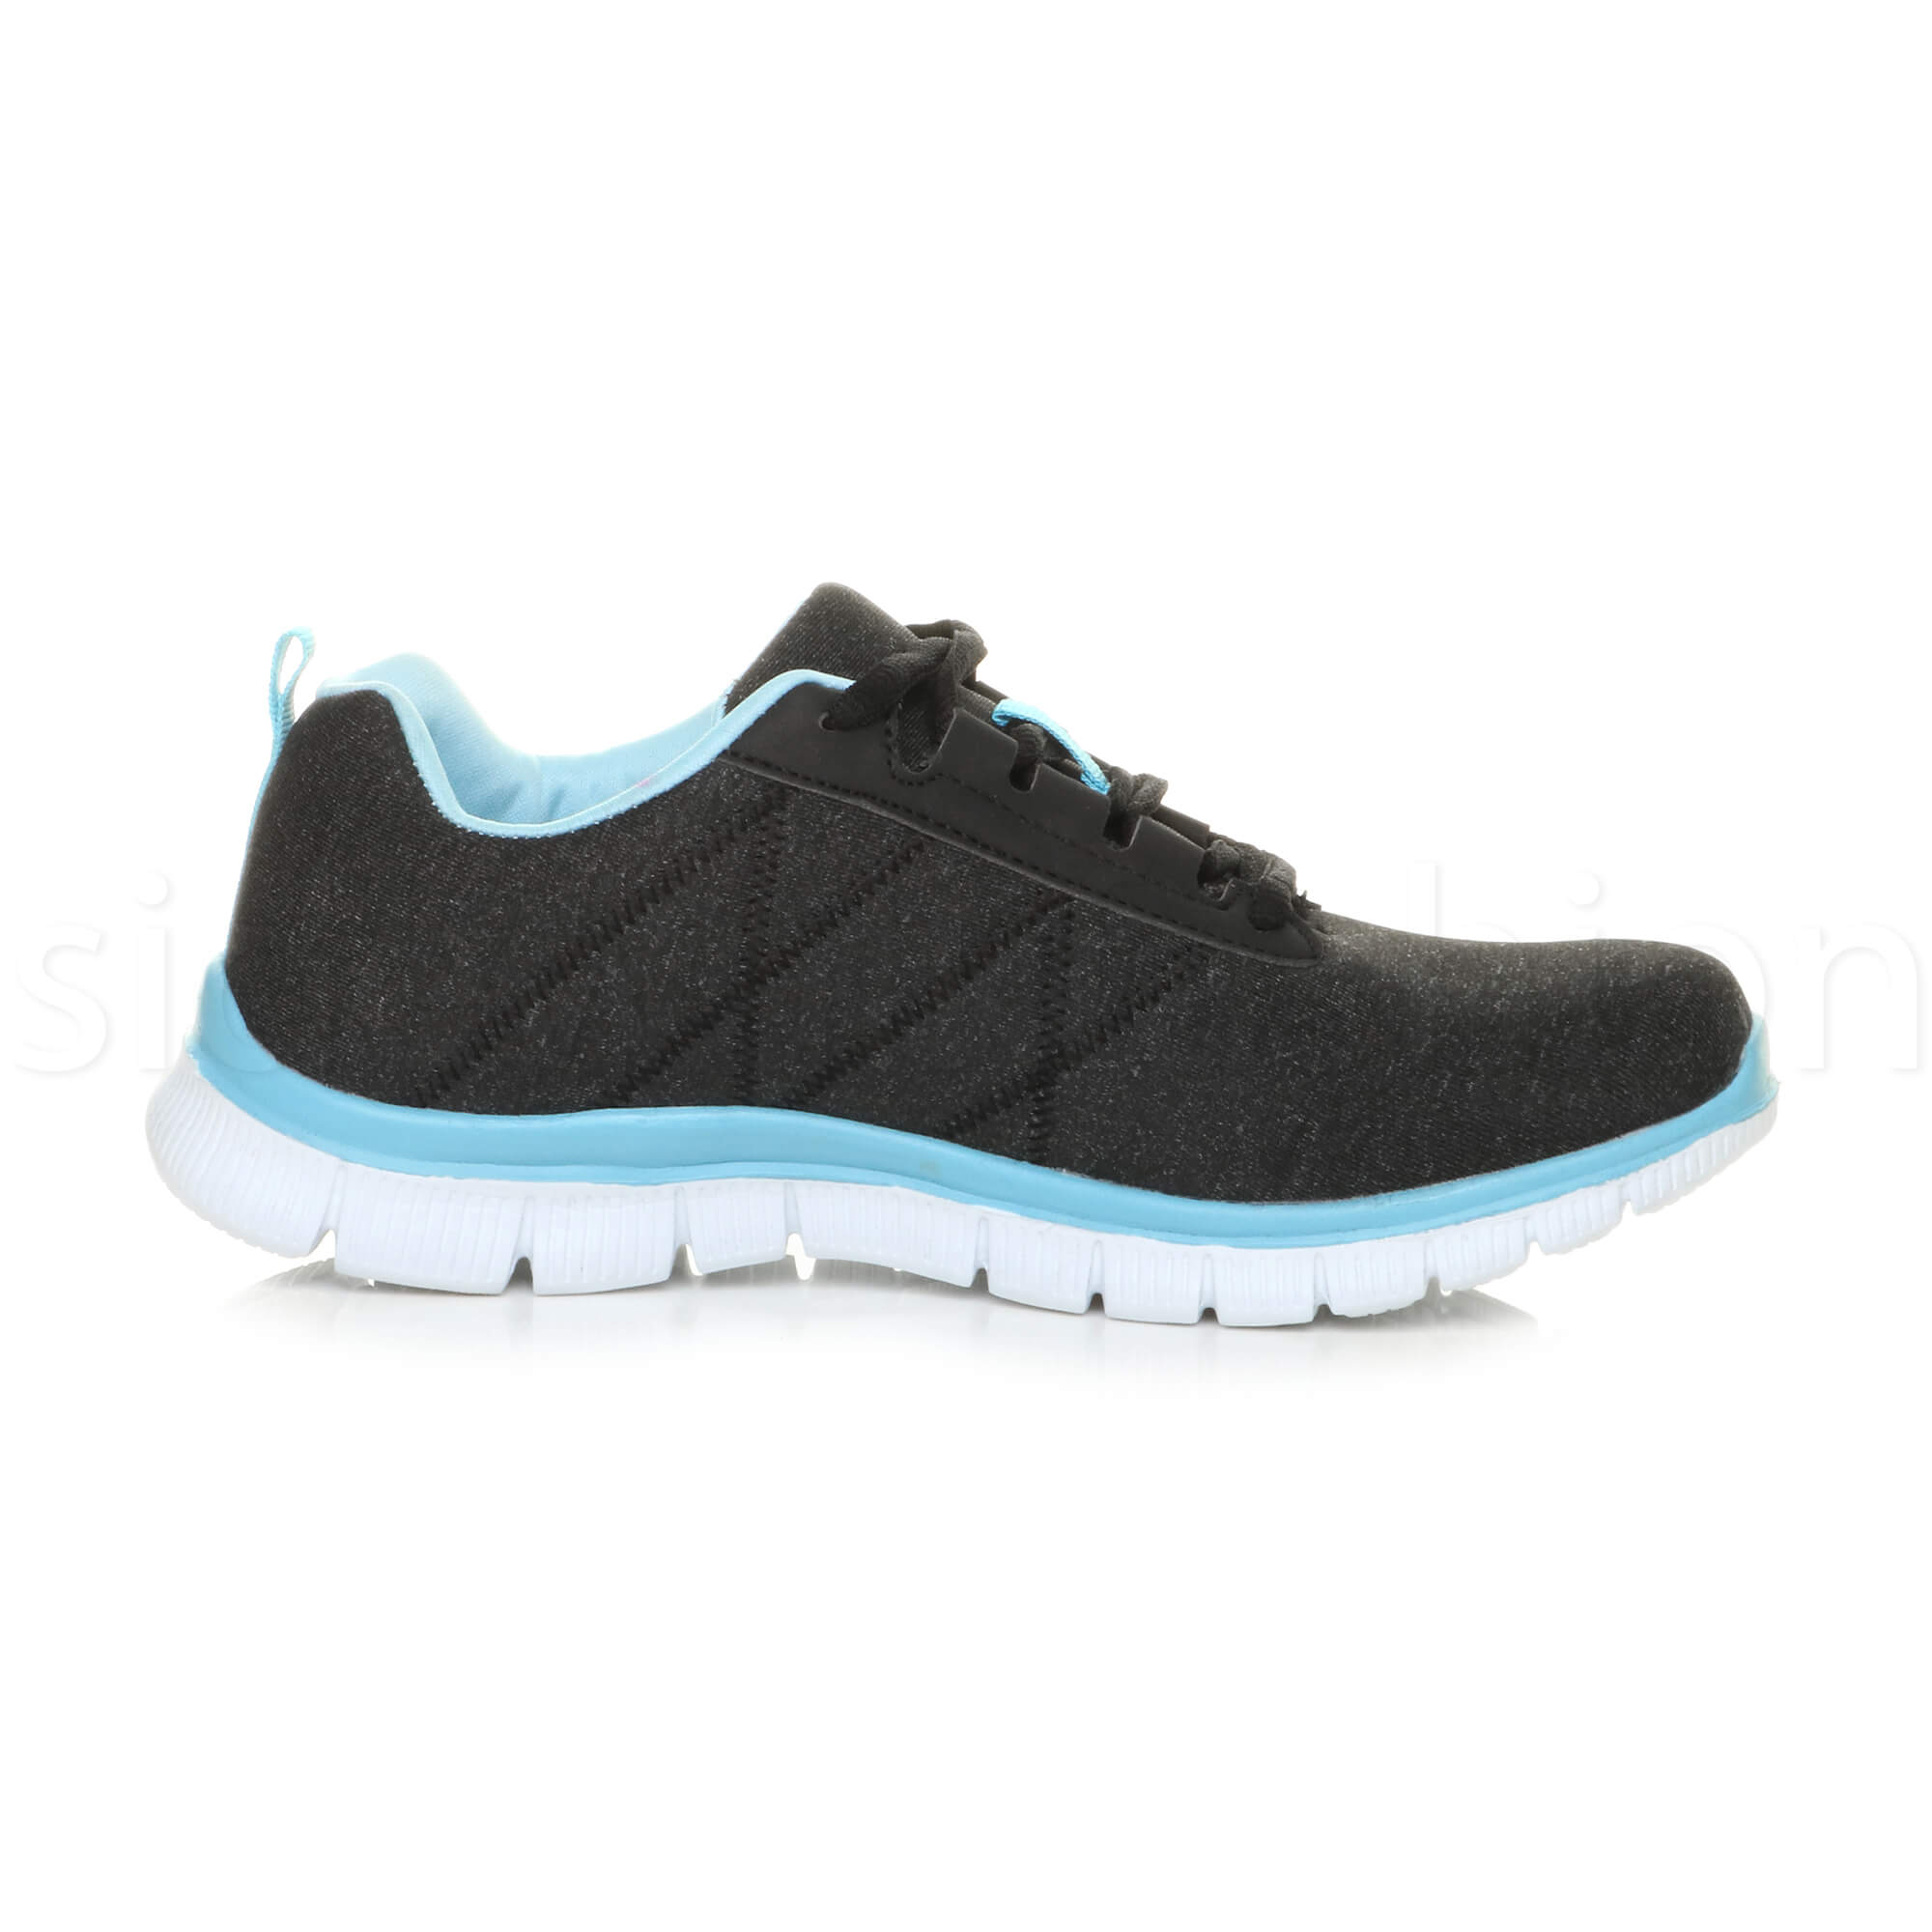 Womens-ladies-comfort-memory-foam-lace-up-trainers-activewear-sneakers-gym-shoes thumbnail 10